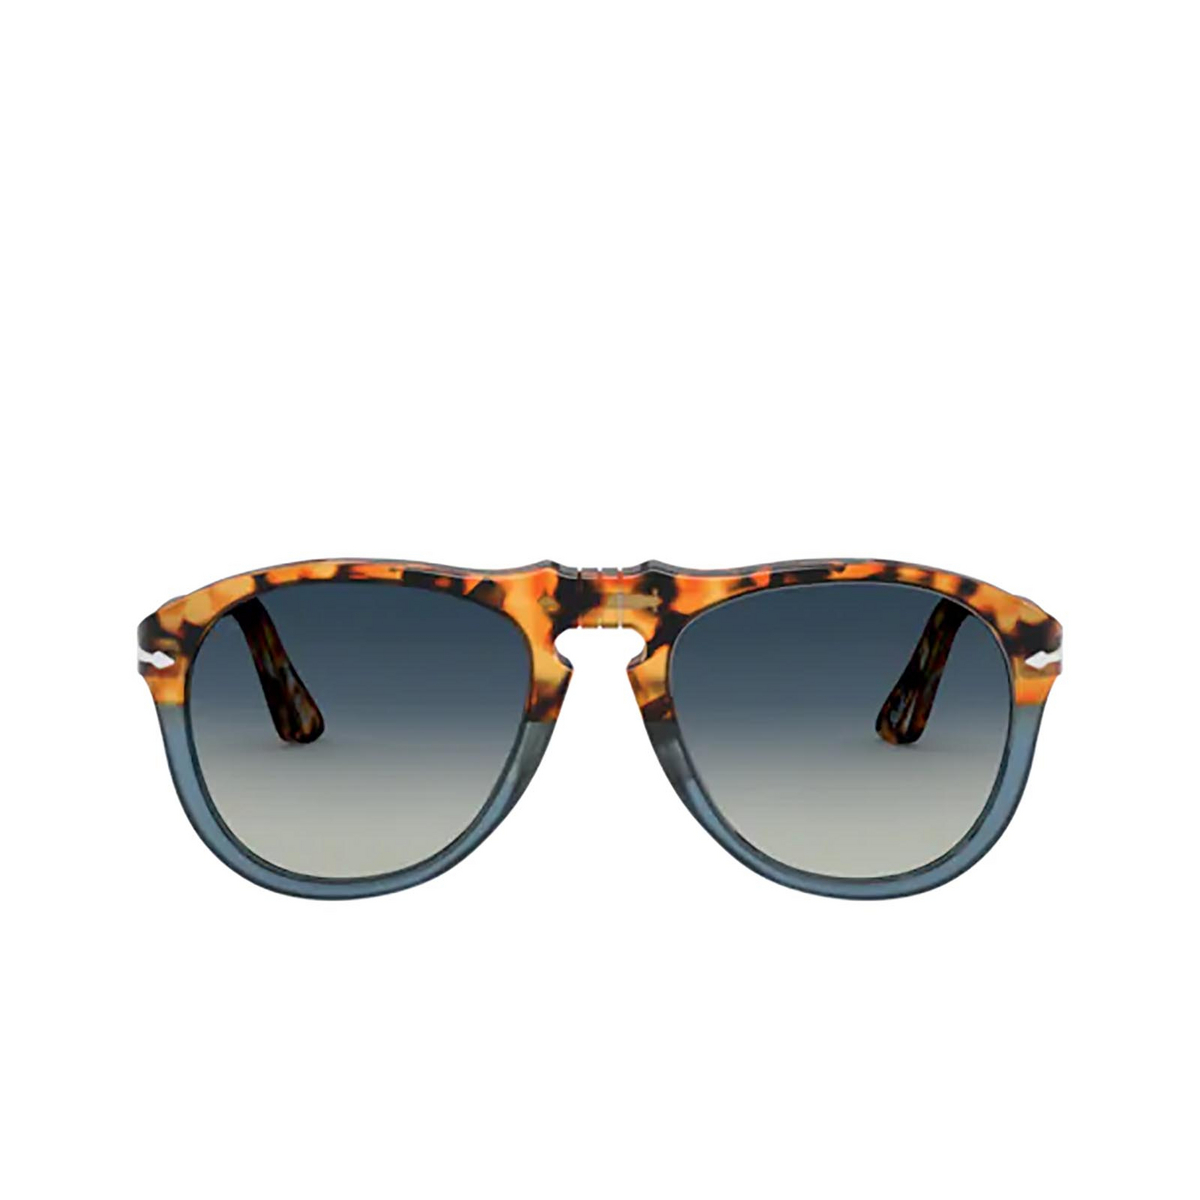 Persol® Aviator Sunglasses: PO0649 color Brown Tortoise & Opal Blue 112032 - front view.